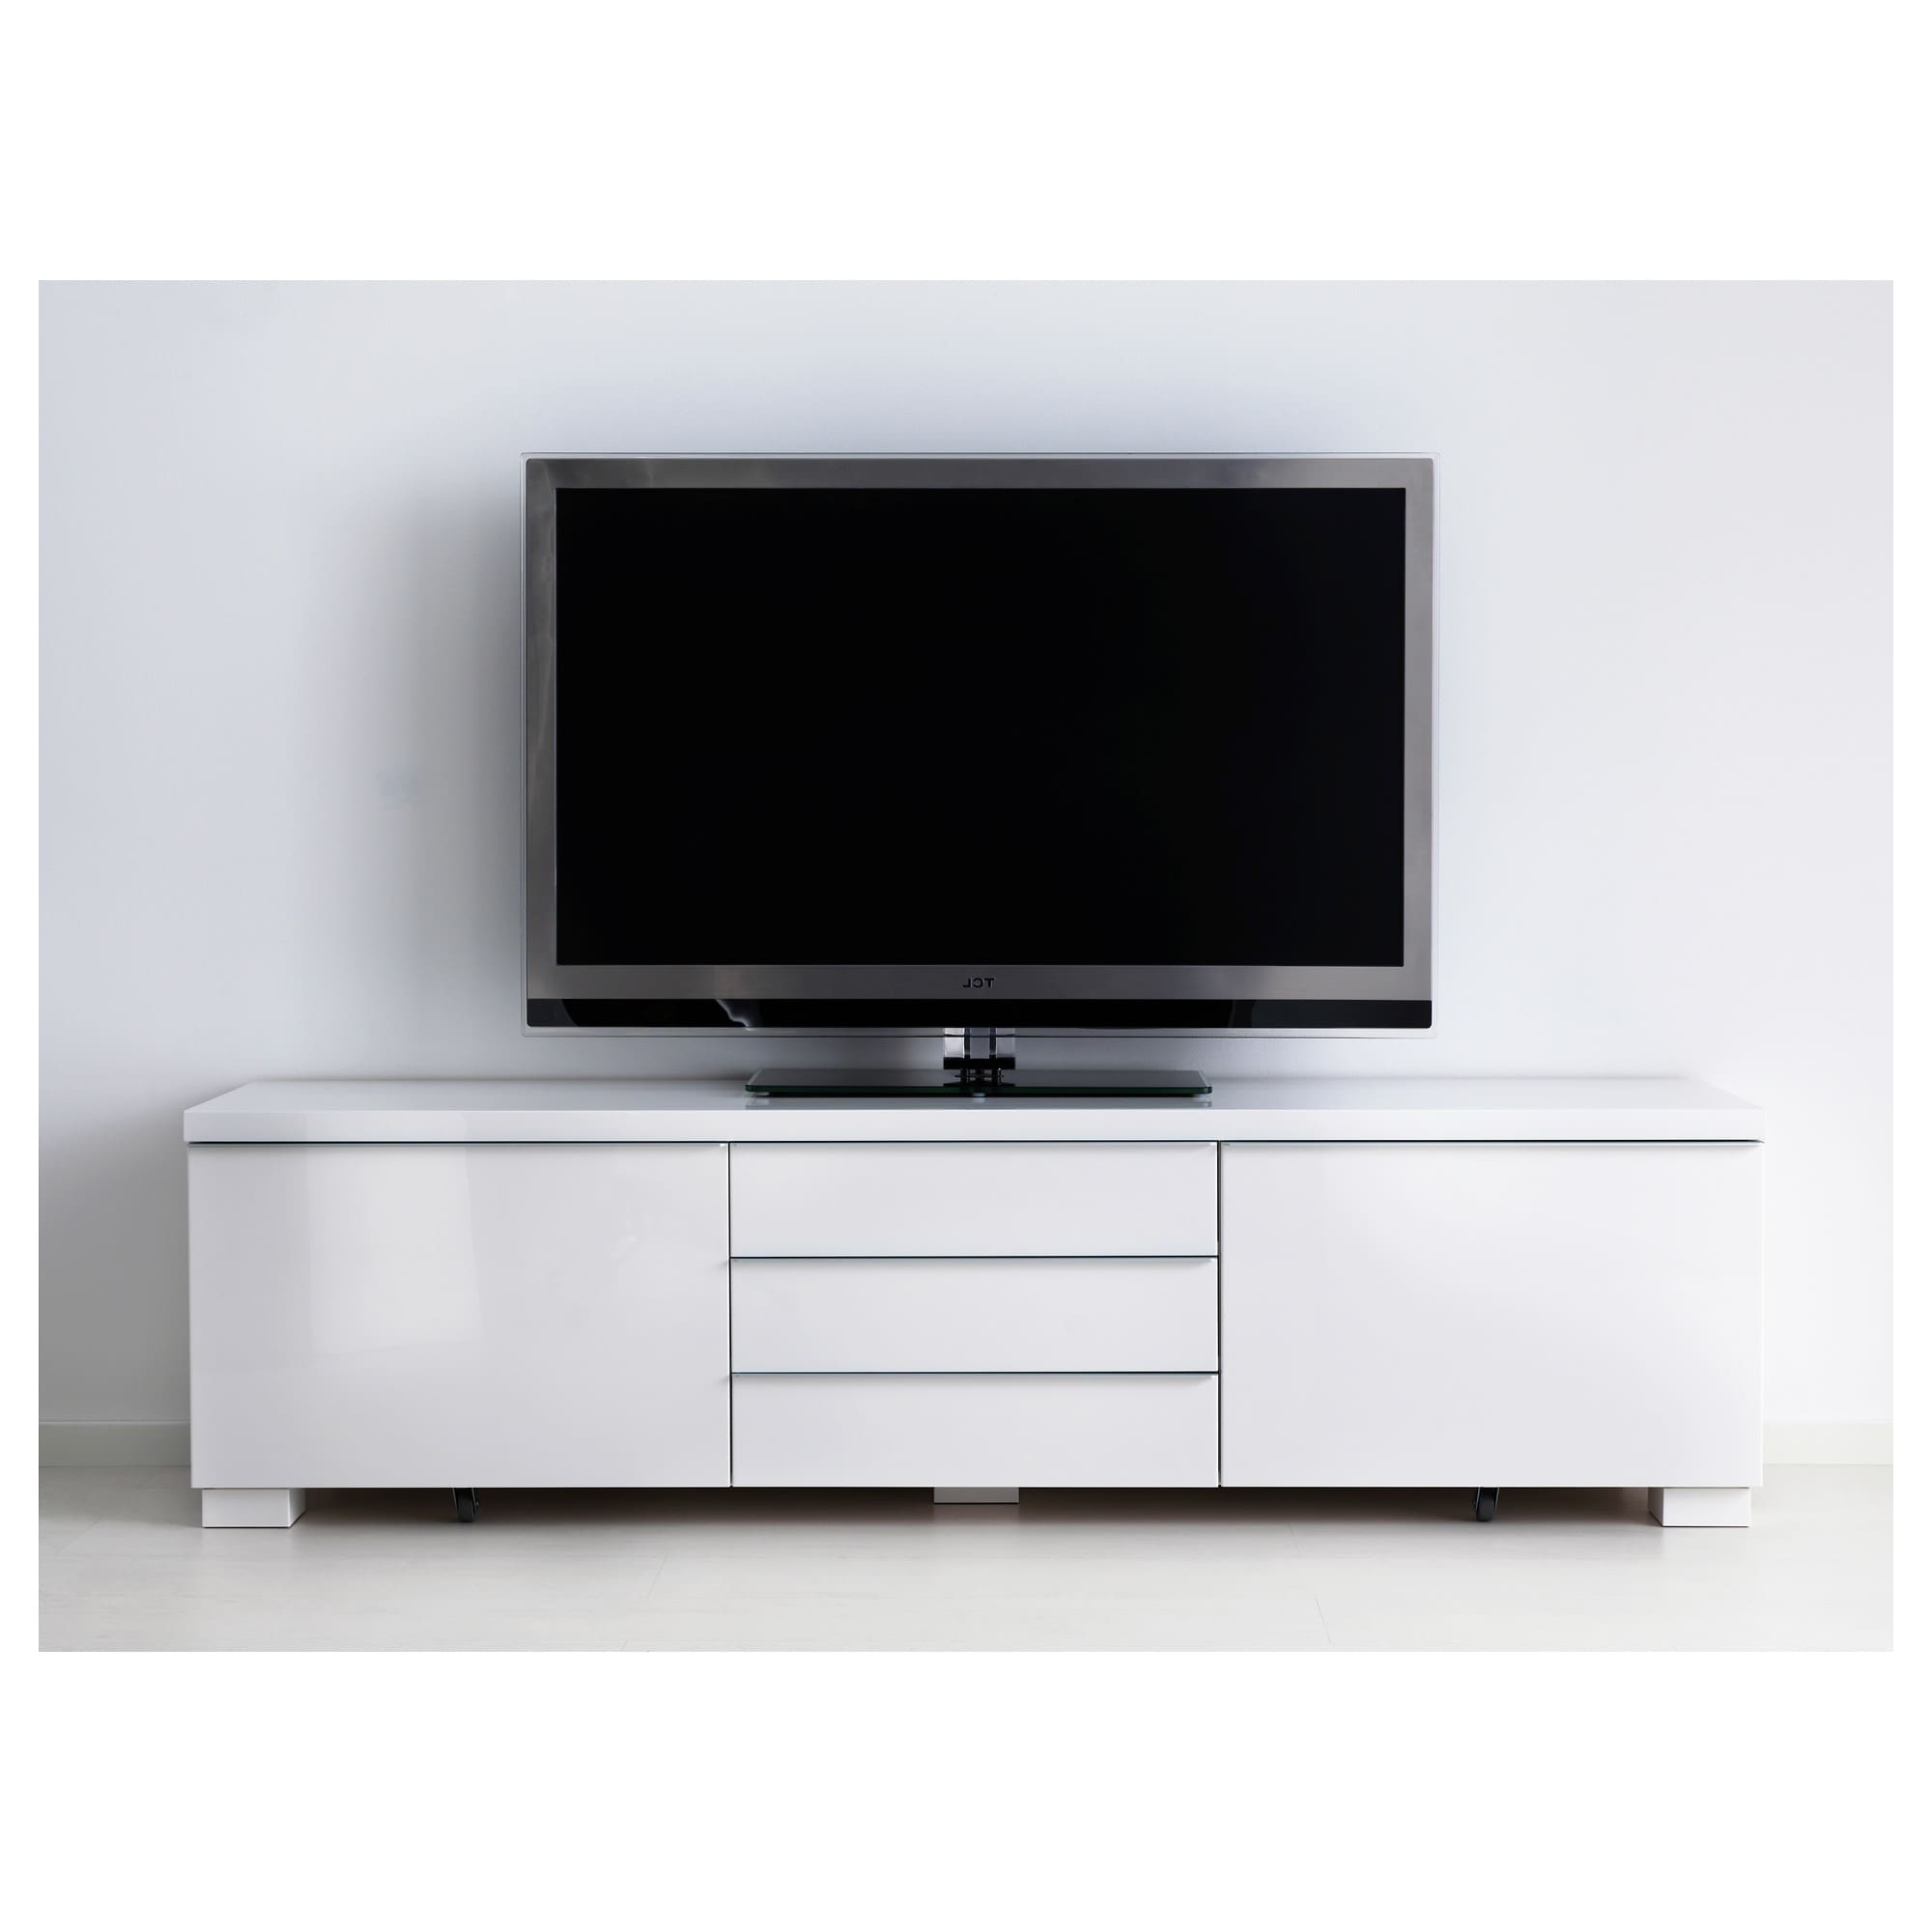 High Gloss Tv Cabinets Within 2017 Bestå Burs Tv Bench High Gloss White 180 X 41 X 49 Cm – Ikea (View 4 of 20)